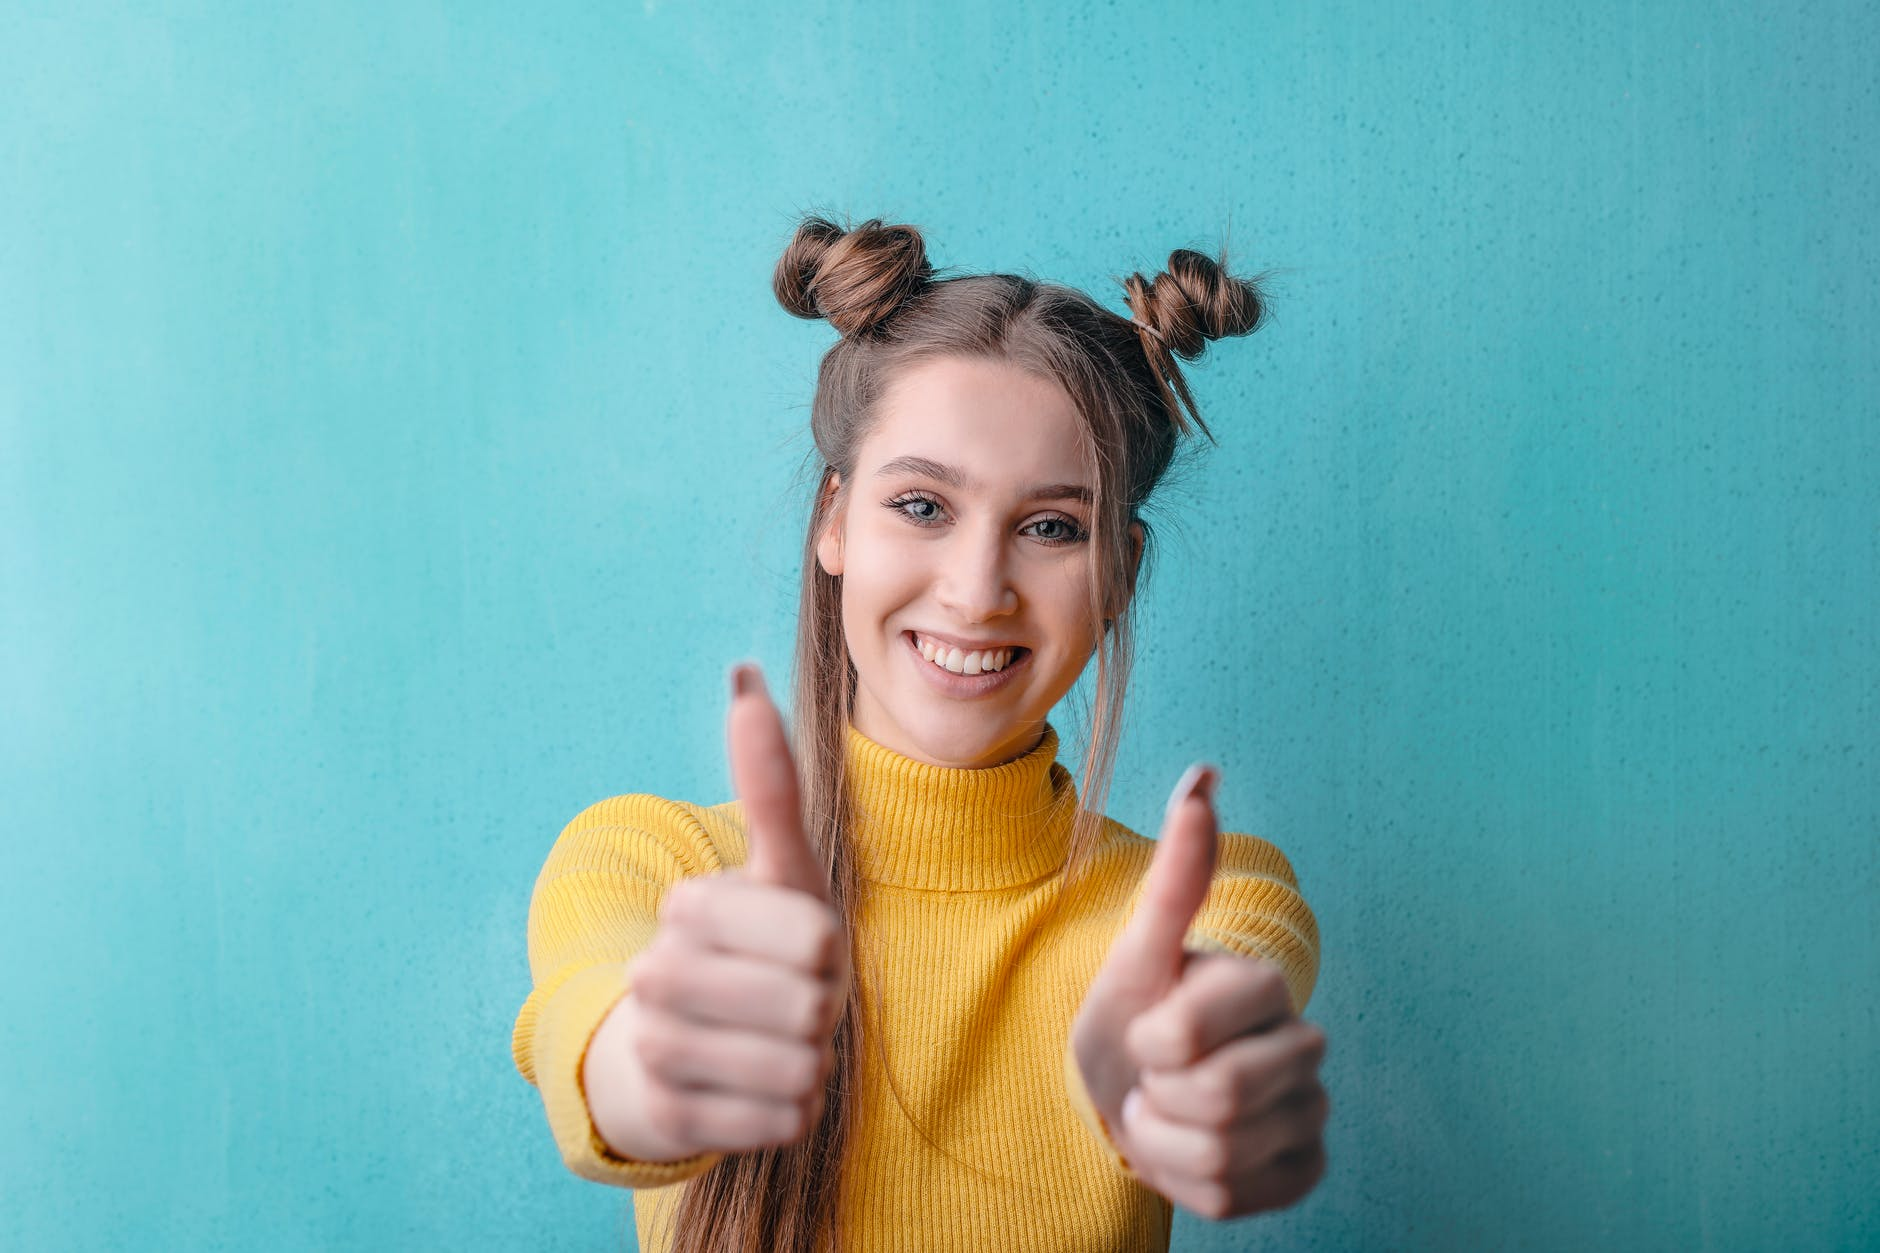 woman in yellow turtleneck sweater smiling